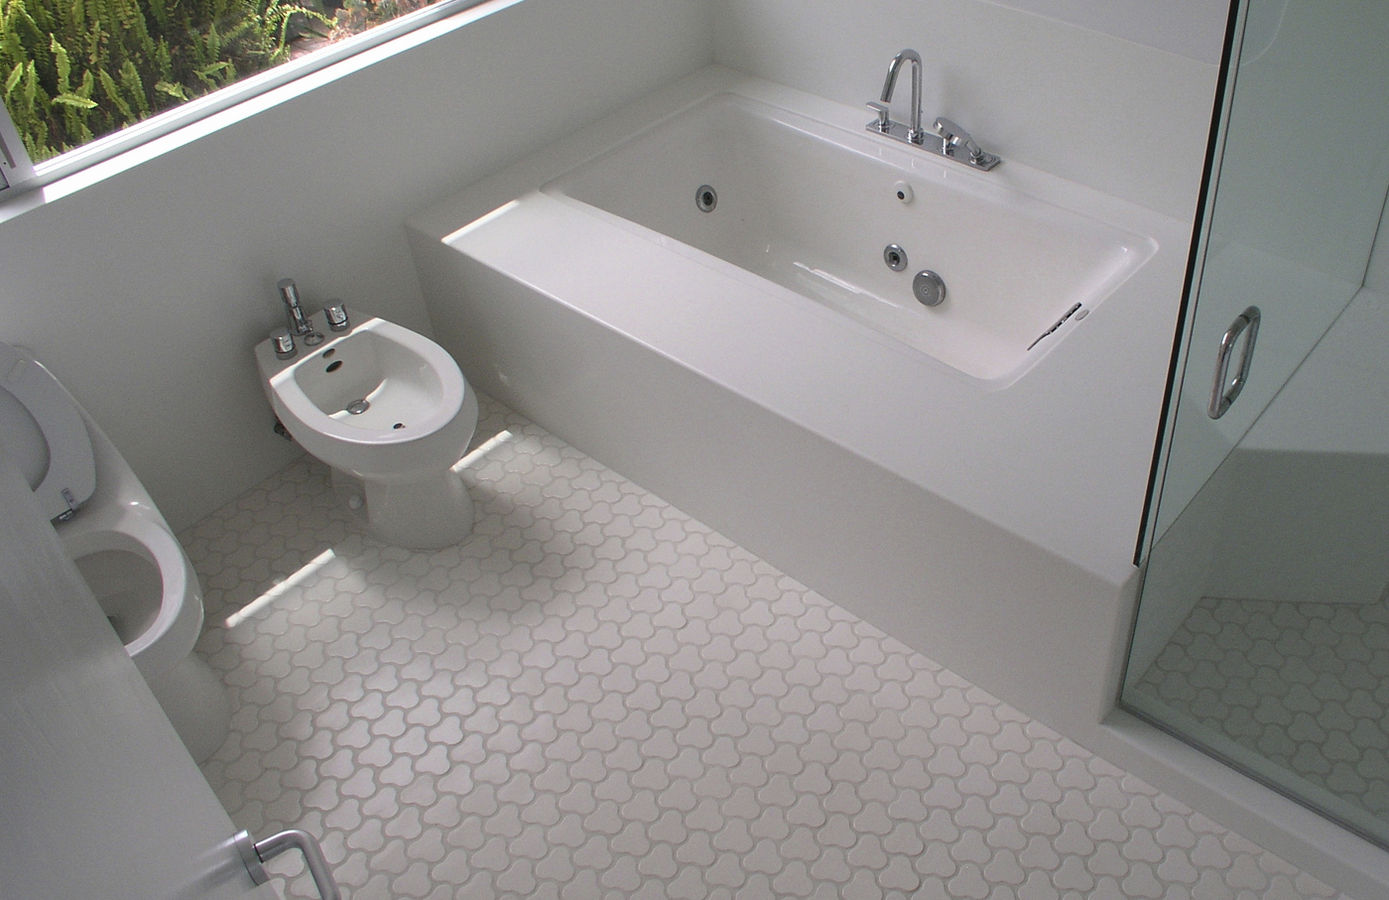 bathroom-exciting-vintage-bathroom-tile-patterns-cool-floor-ideas-with-white-ceramic-pattern-floor-tile-bathroom-and-white-corner-rectangular-bathtub-plus-modern-white-toilet-as-well-as-bathroom